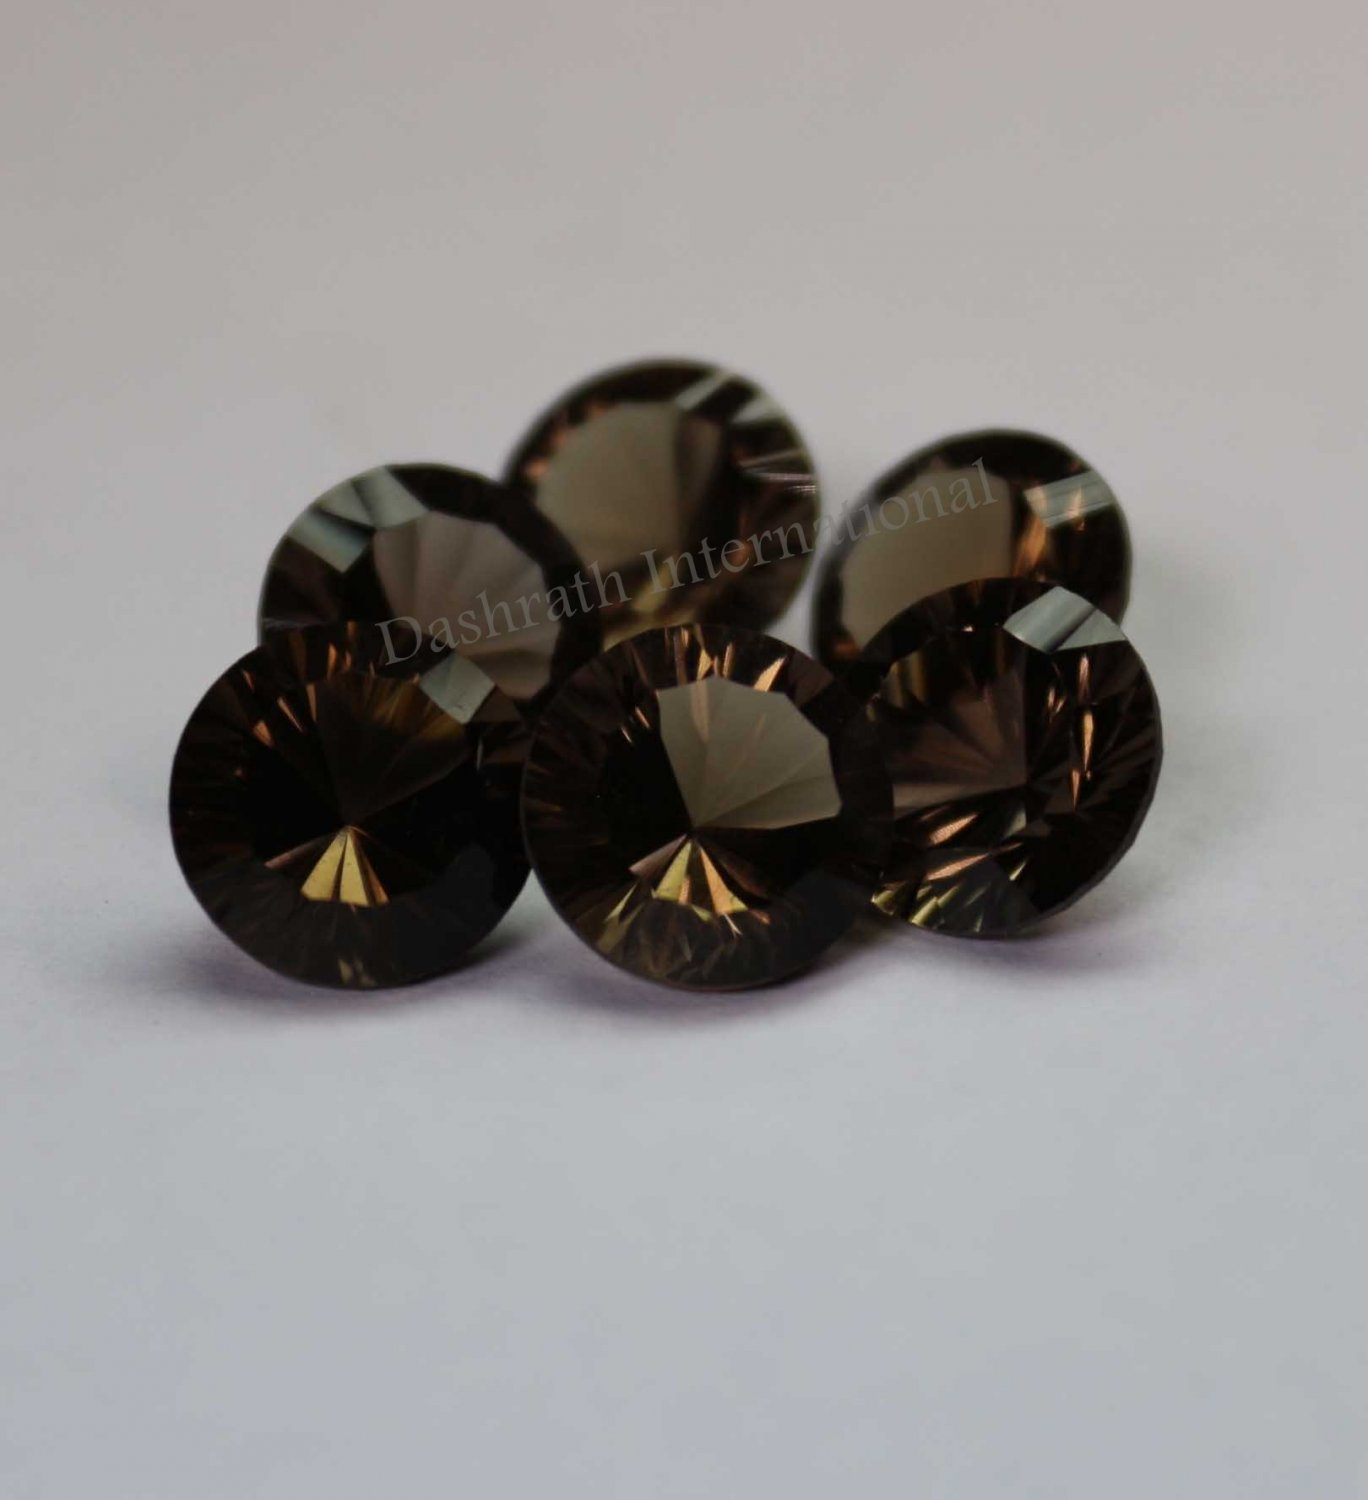 10mmNatural Smoky Quartz Concave Cut Round 100 Pieces Lot    (SI) Top Quality  Loose Gemstone